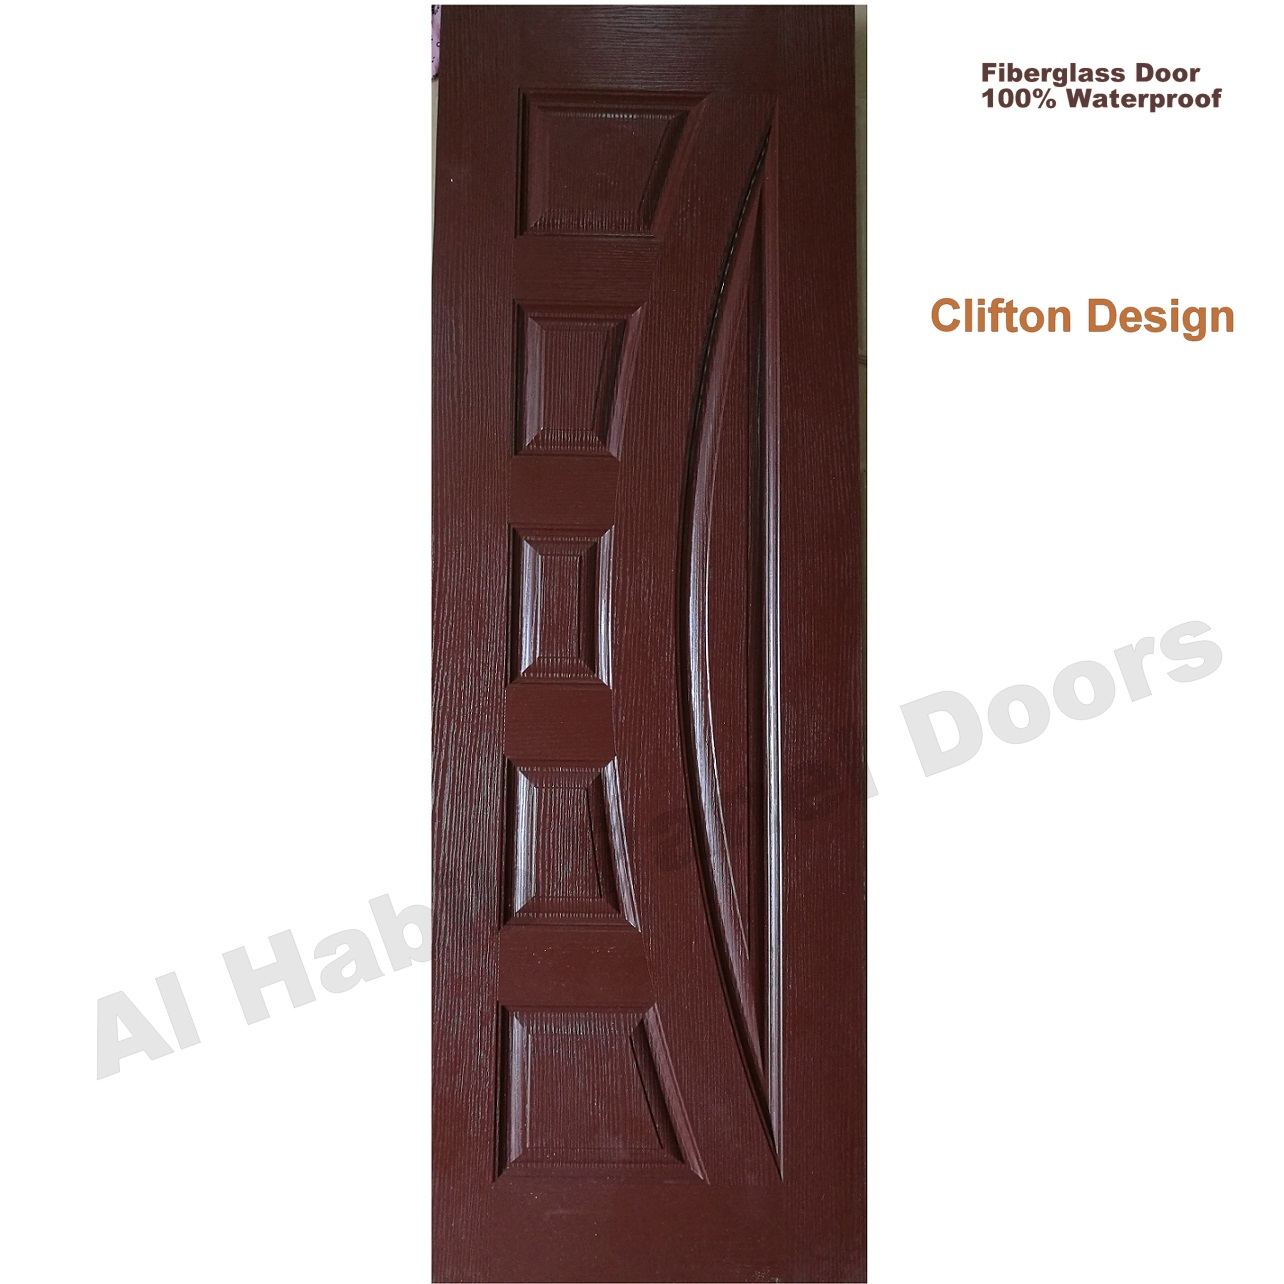 Fiberglass Door New Clifton Design